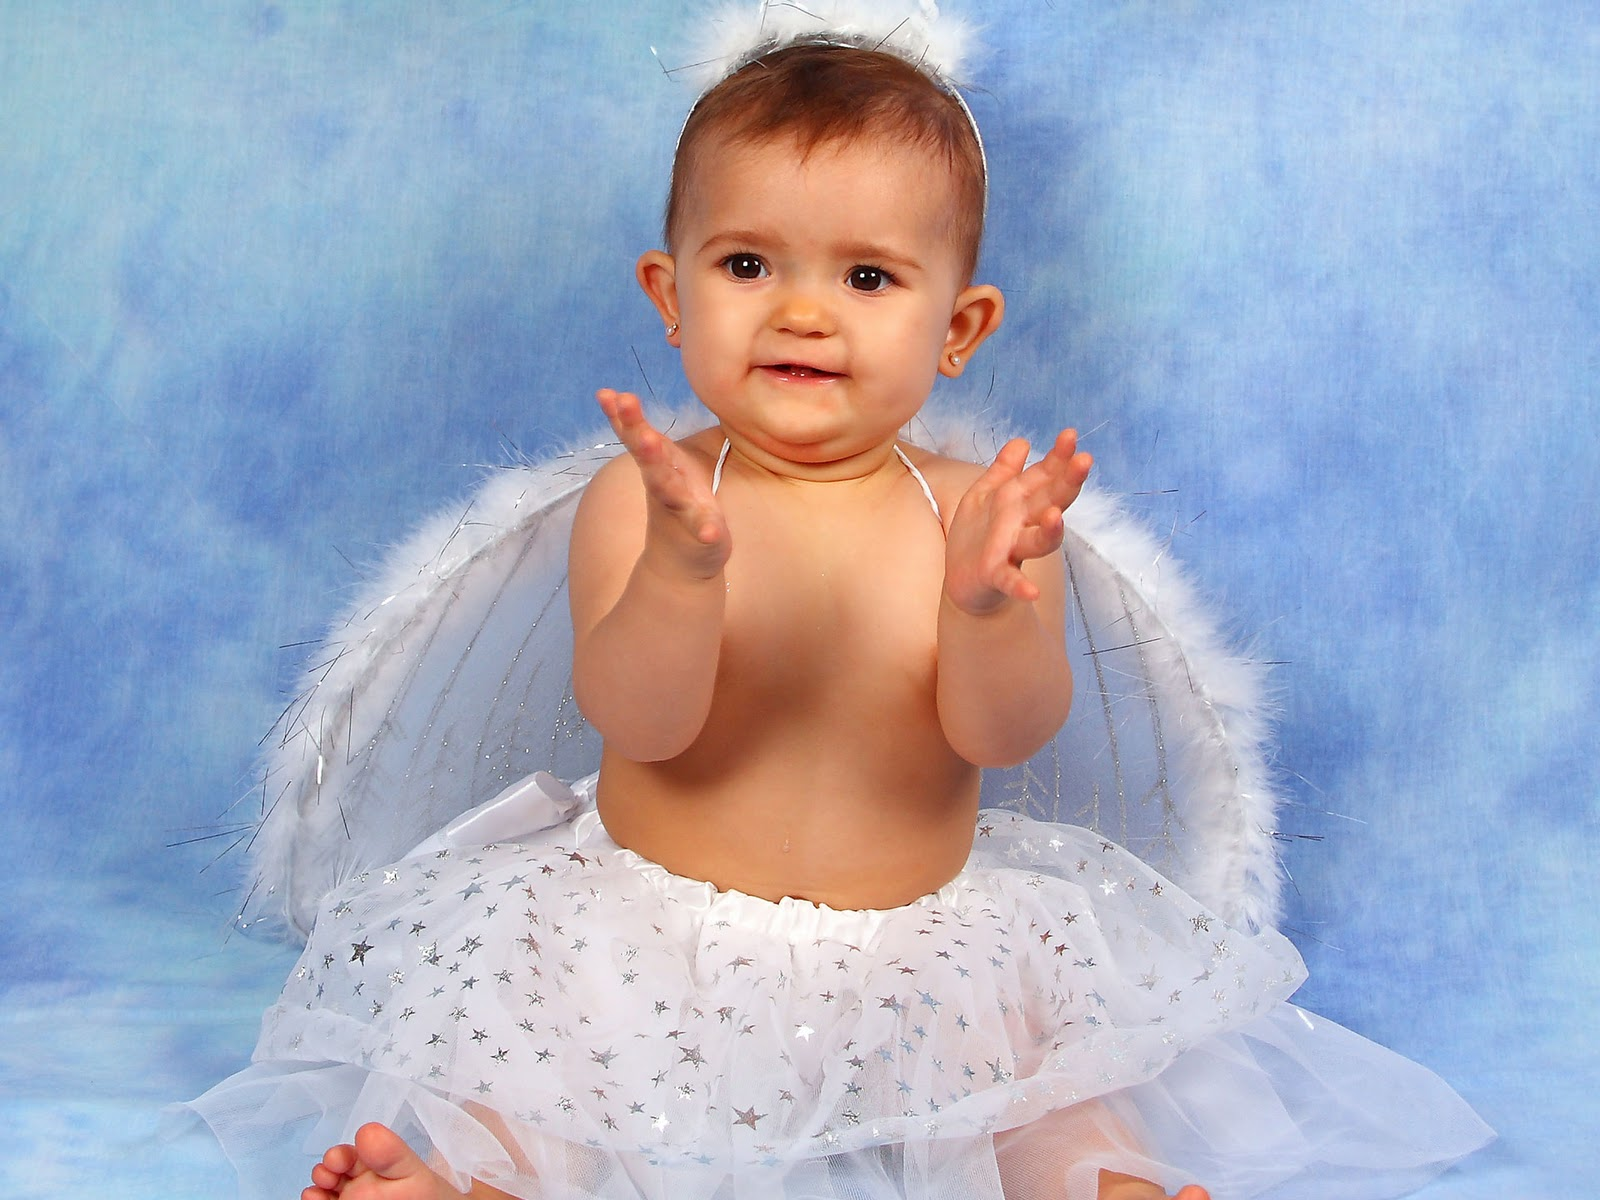 Baby Angels Wallpapers Is Very Cute And Innocent It Can Use Desktop Walls Mobiles